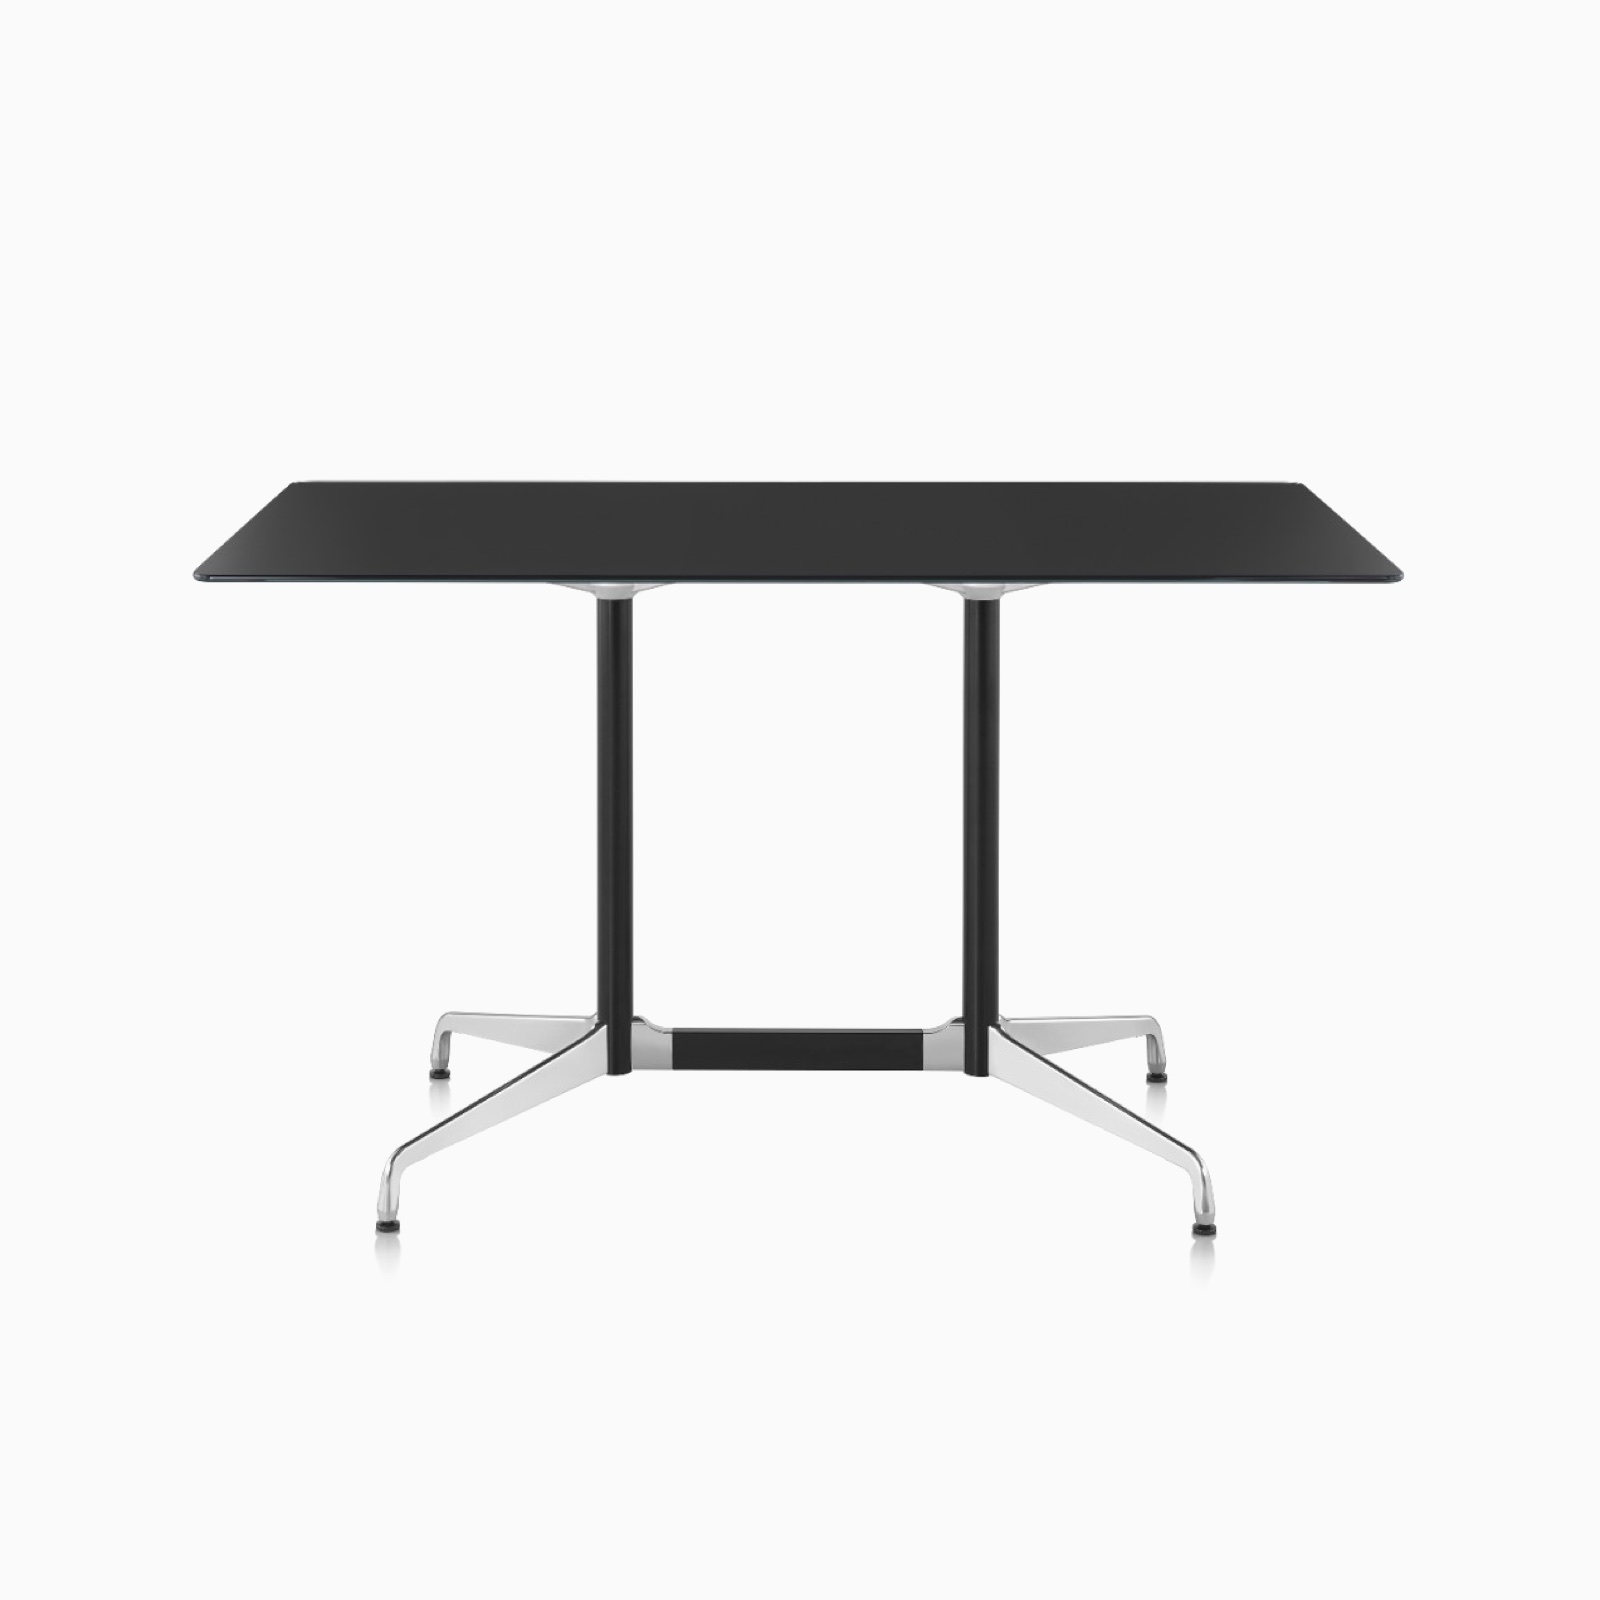 An Eames Standing Height Conference Table featuring a black back-painted glass top.